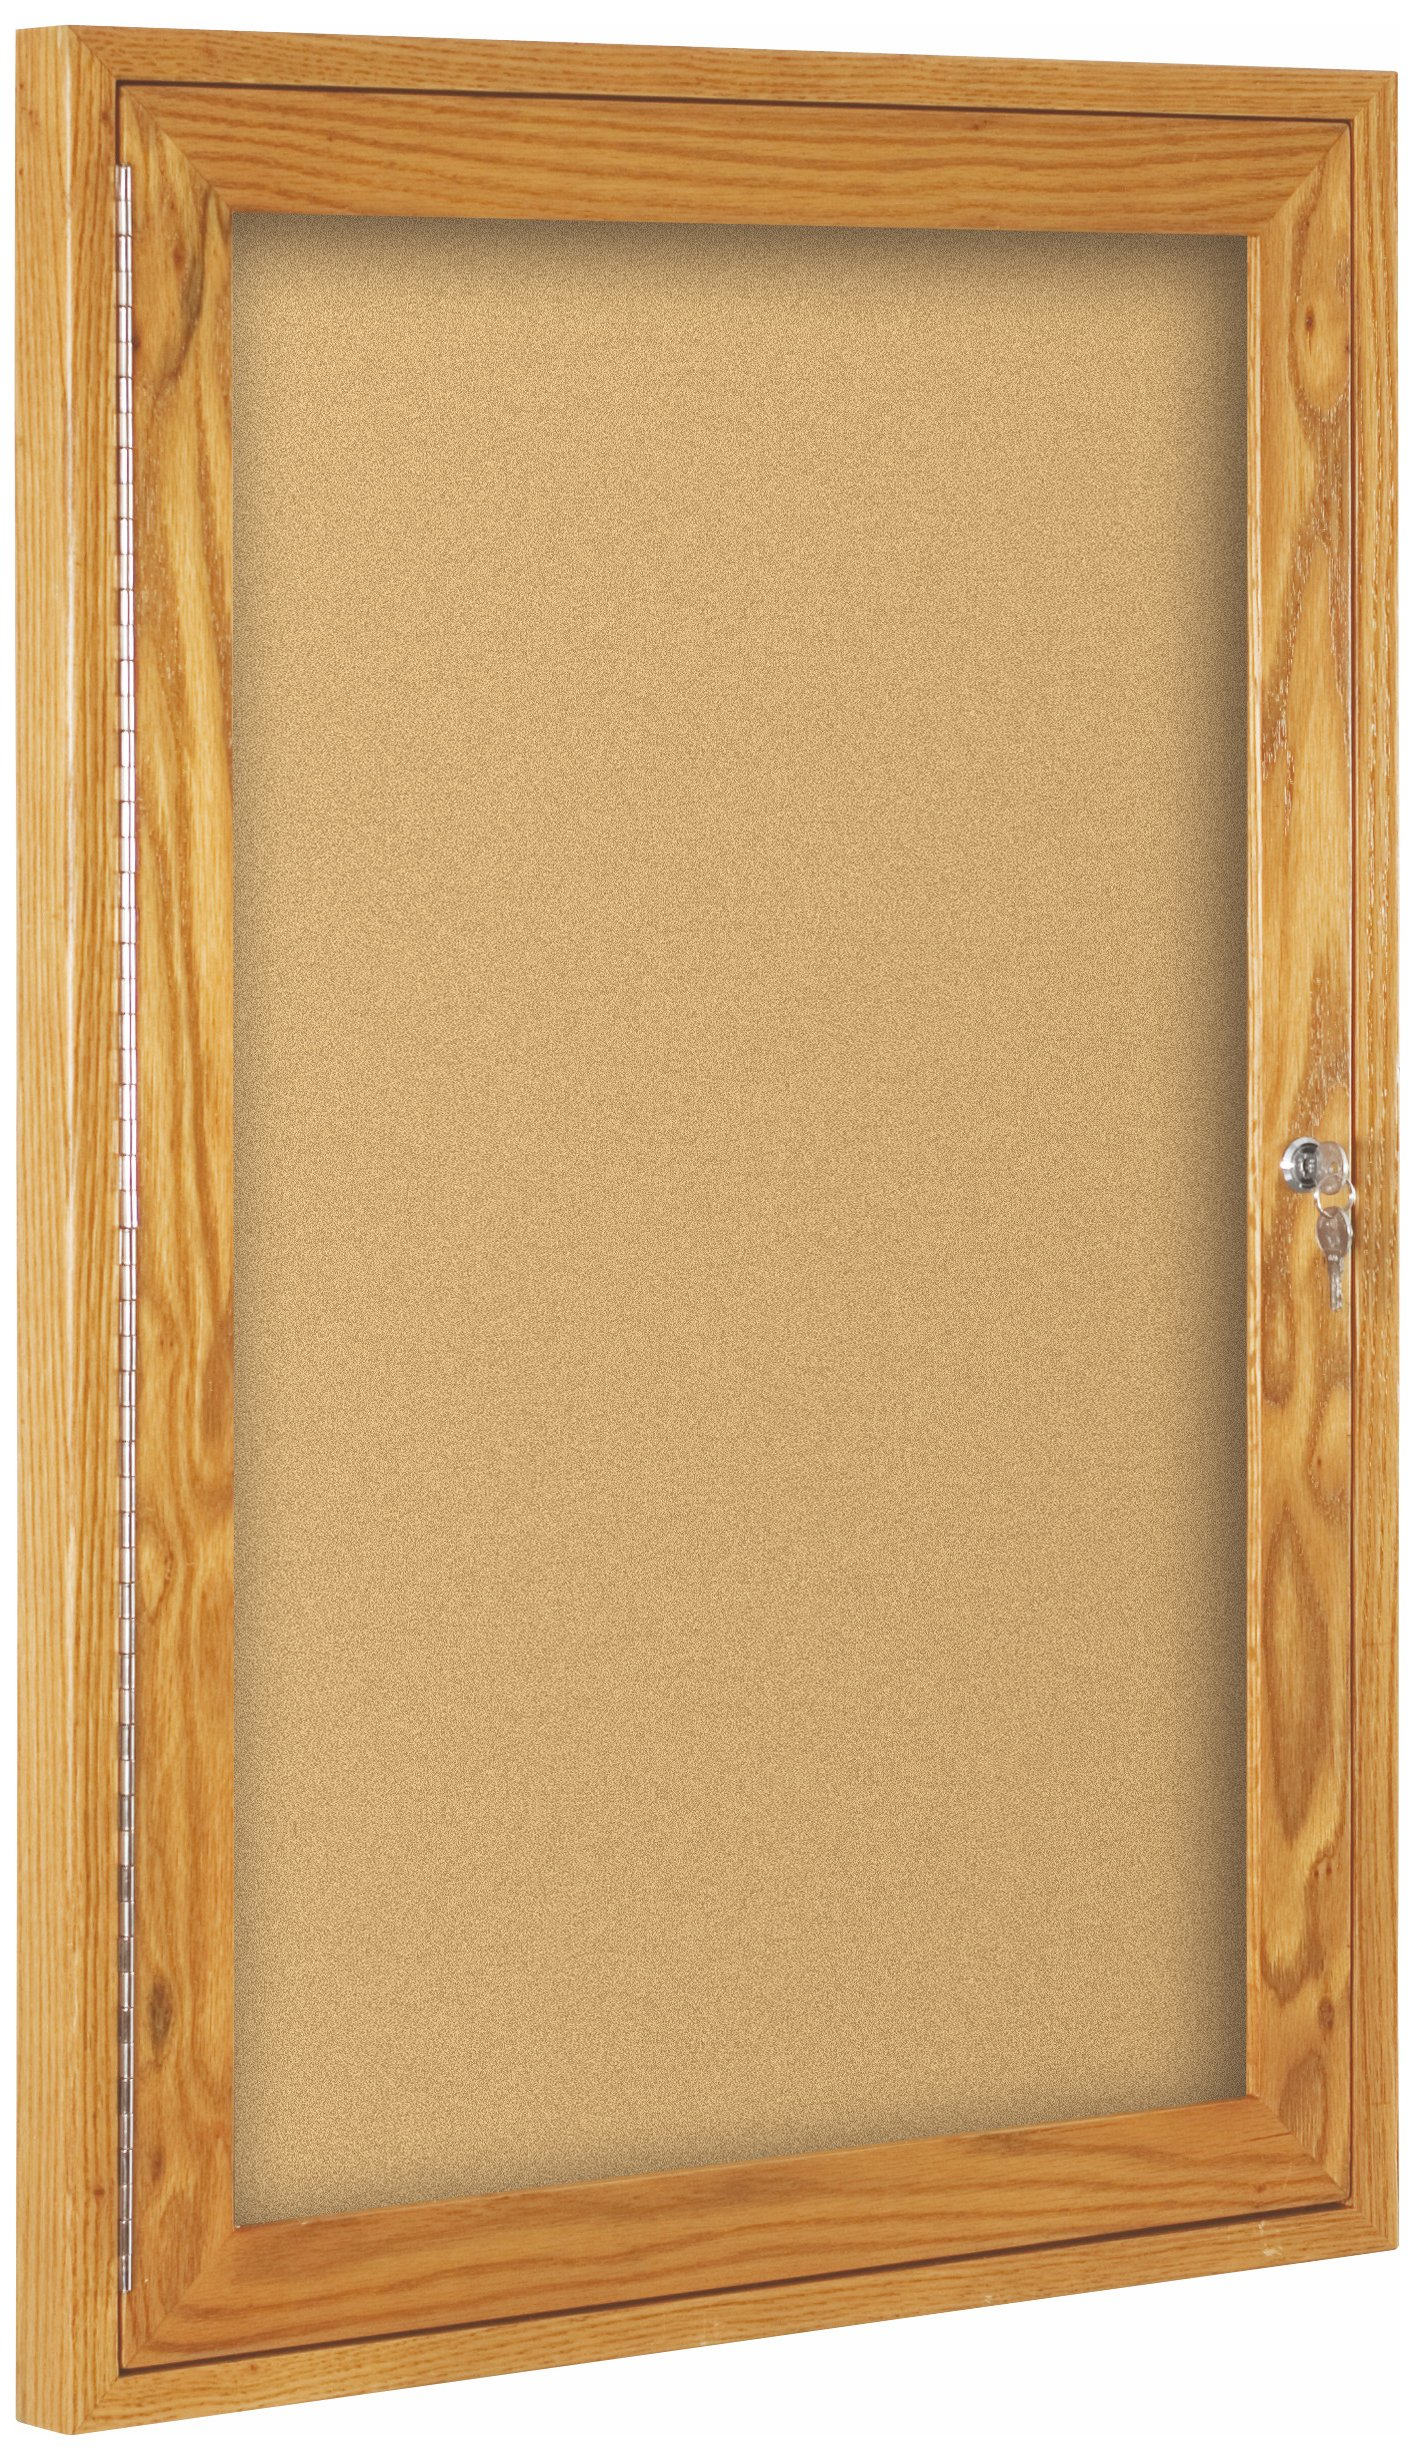 Best-Rite Wood Trim Enclosed Bulletin Board Cabinet, 1 Hinged Door, 36''H x 24''W, Natural Cork, Oak Frame (94HWB)